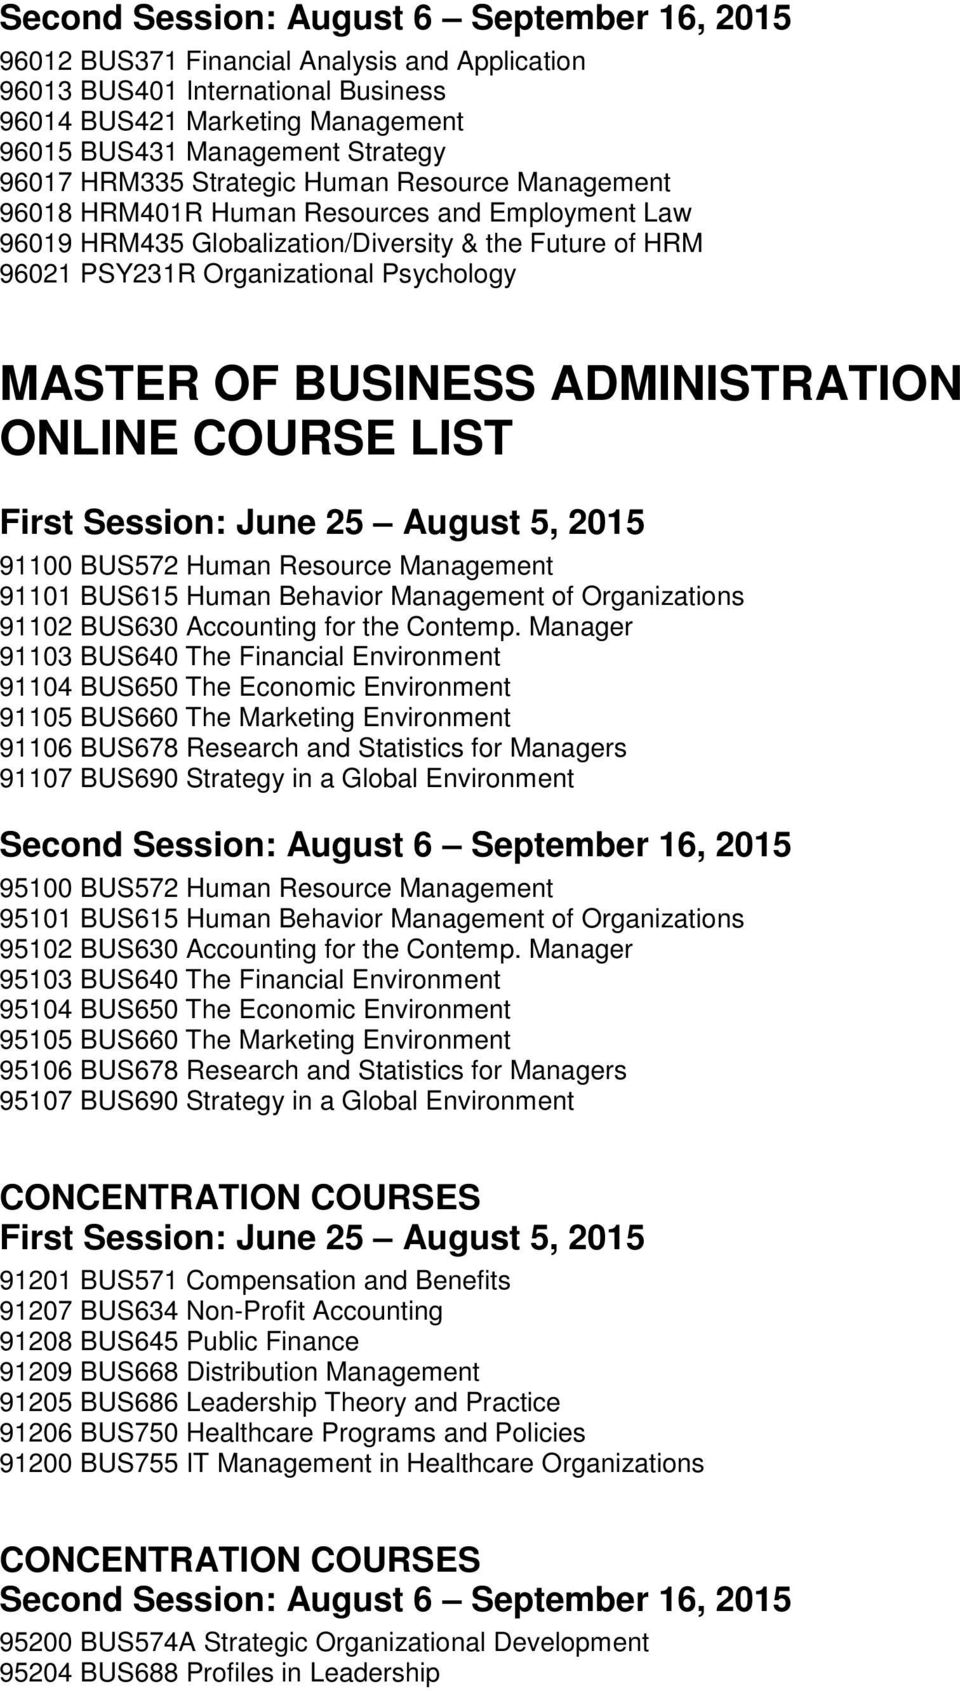 MASTER OF BUSINESS ADMINISTRATION ONLINE COURSE LIST 91100 BUS572 Human Resource Management 91101 BUS615 Human Behavior Management of Organizations 91102 BUS630 Accounting for the Contemp.